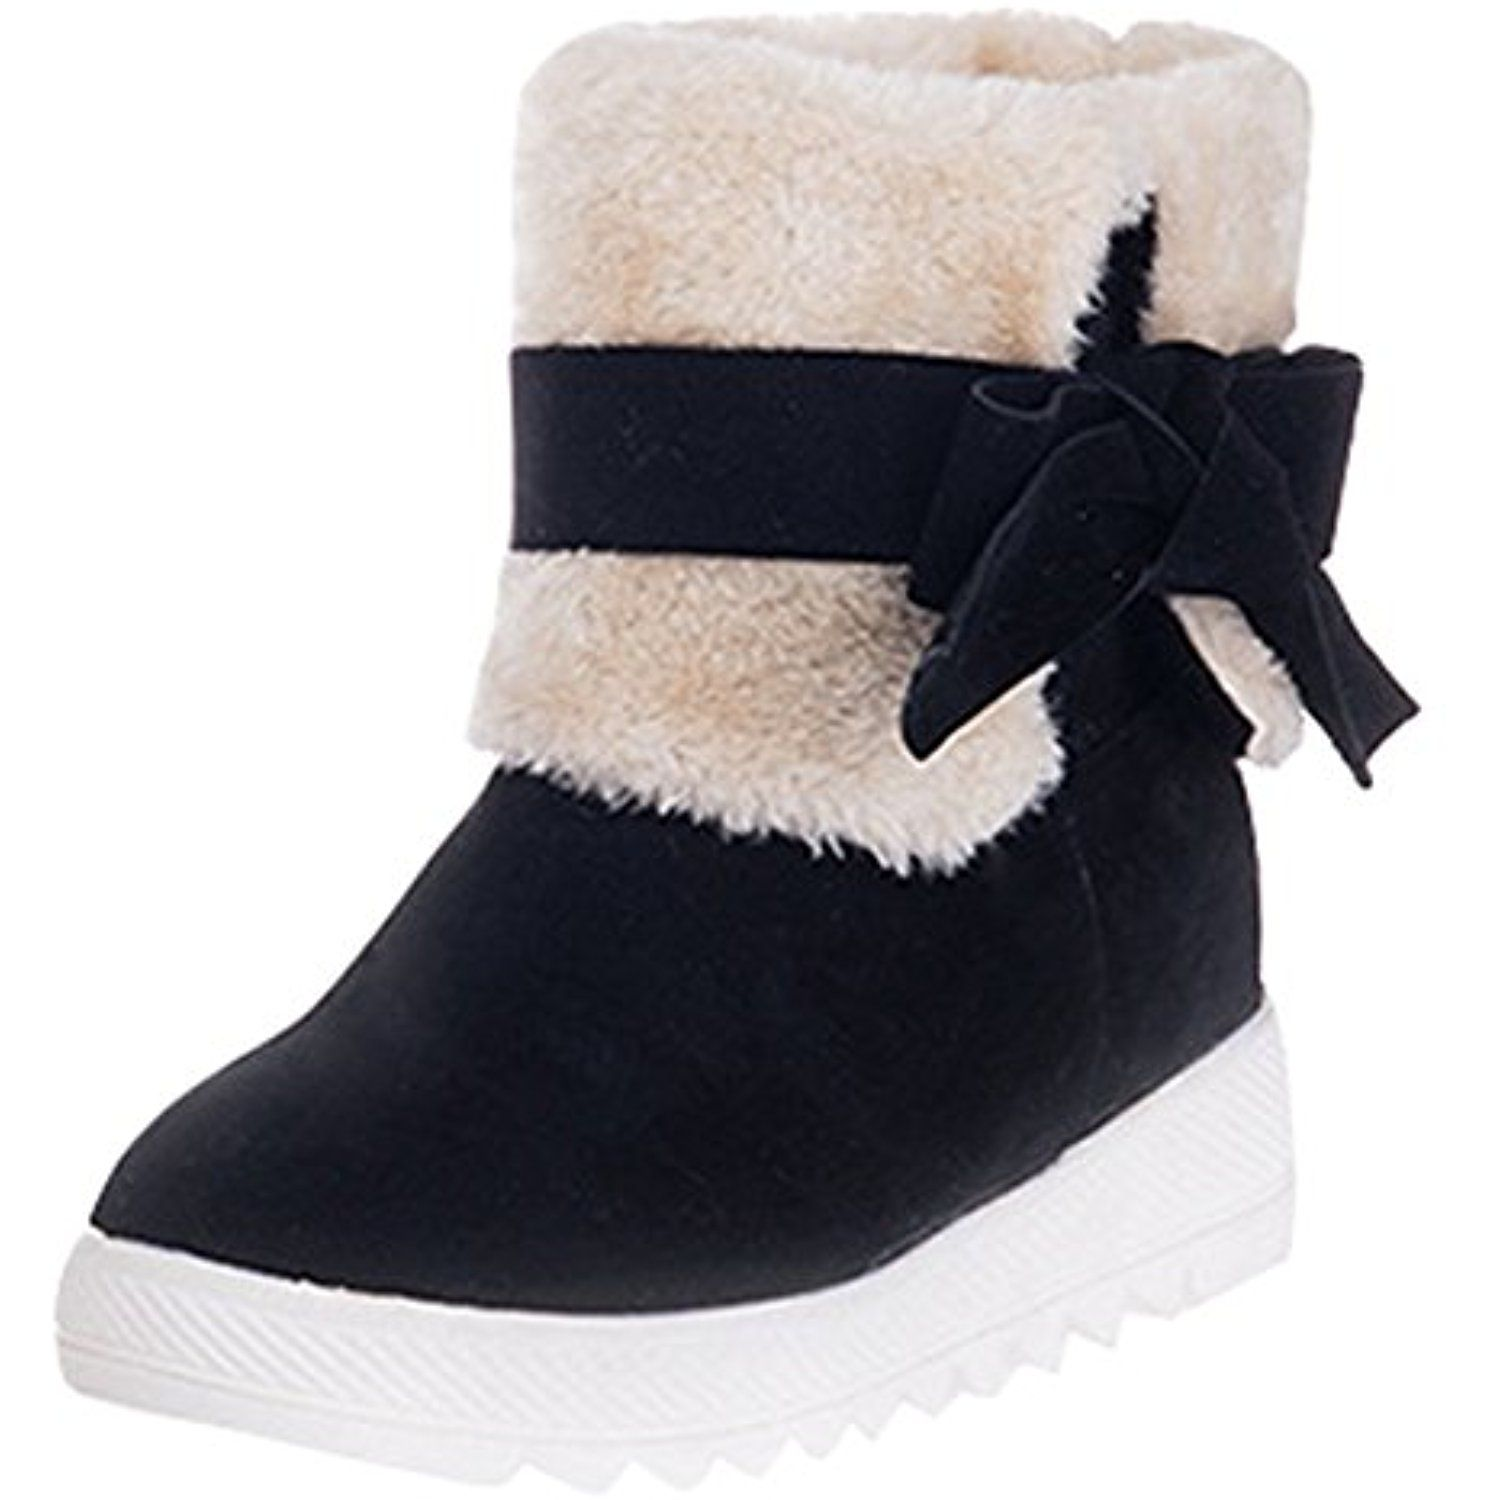 Women's Sweet Folded Mid Heels Wedge Heighten Faux Fur Lined Snow Booties With Bow